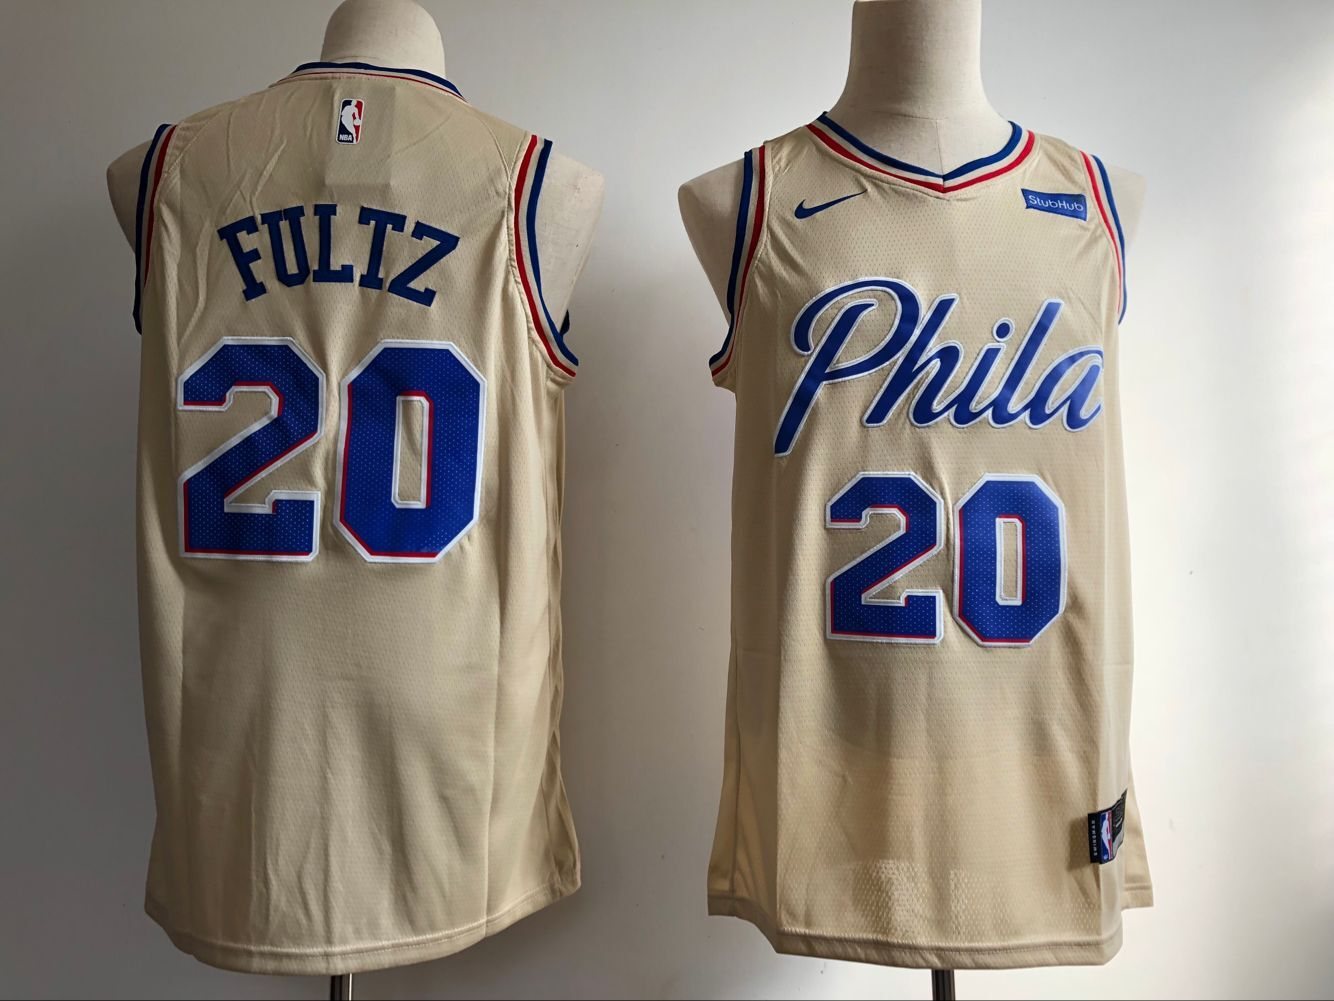 Men Philadelphia 76ers 20 Fultz Gream City Edition Game Nike NBA Jerseys